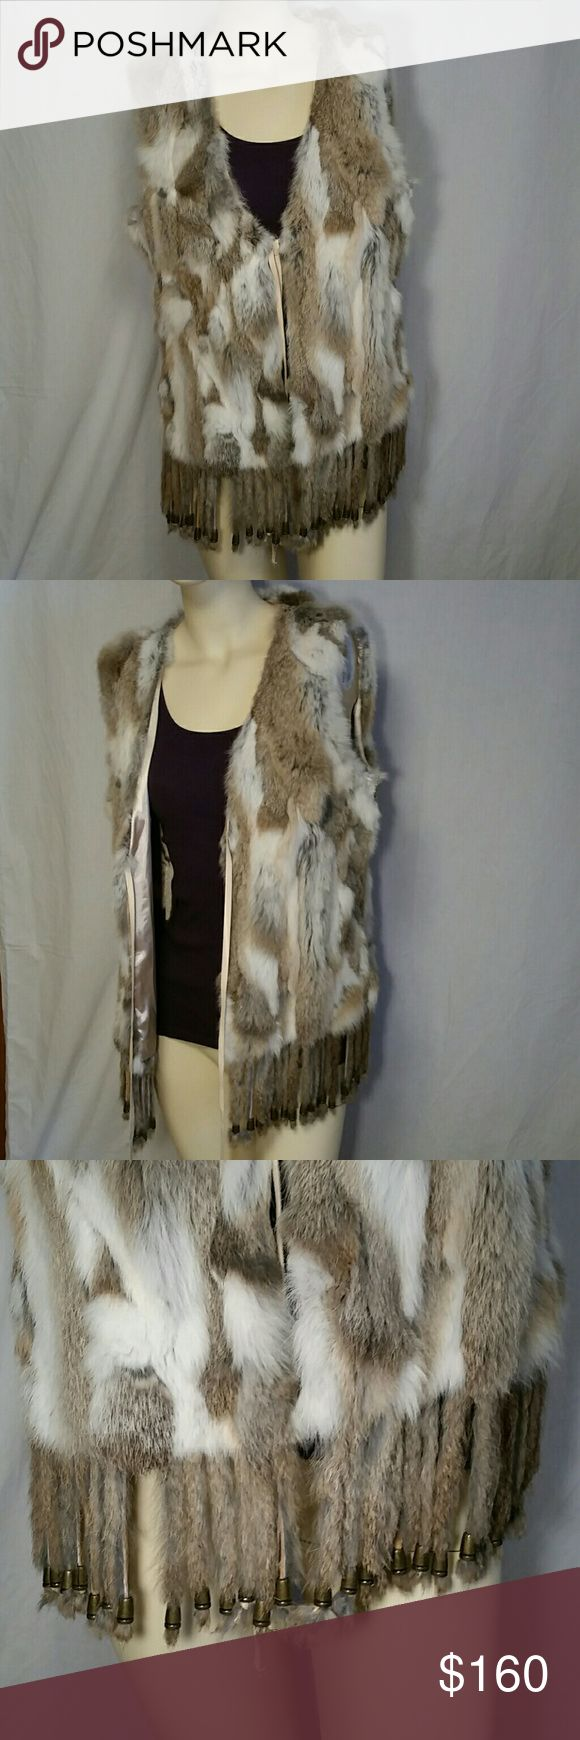 """Alberto Makali Genuine Rabbit Fur Vest w/ Fringe Beautiful 100% genuine rabbit fur vest from Alberto Makali! The fringe on the hem gives this piece a very bohemian festival feeling. There are leather straps so you can tie it closed or just leave it hanging open. Size Medium Measurements laying flat with the two chest hems touching, not overlapping: Chest 18"""" Length 24"""" ...plus about another 4"""" of the fringe There is some wear  to the fur under one of the armpits and one of the fringe pieces…"""